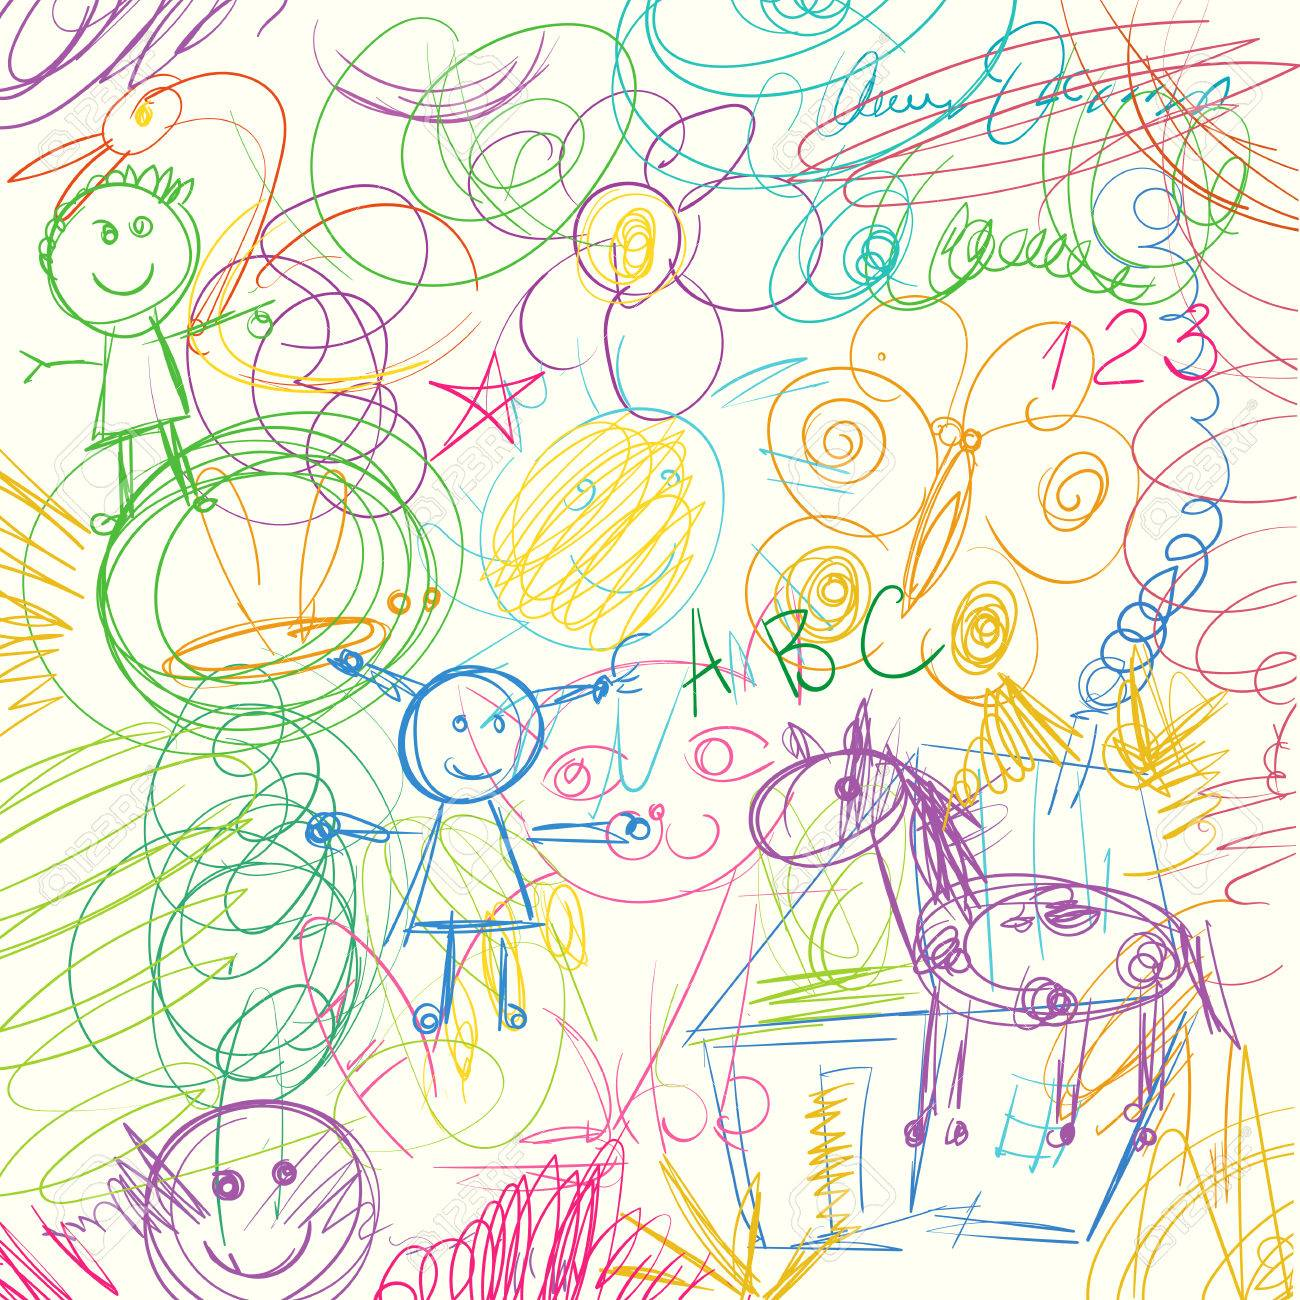 1300x1300 Children Doodle. Colored Pencils Scribbles Made By A Little Kid